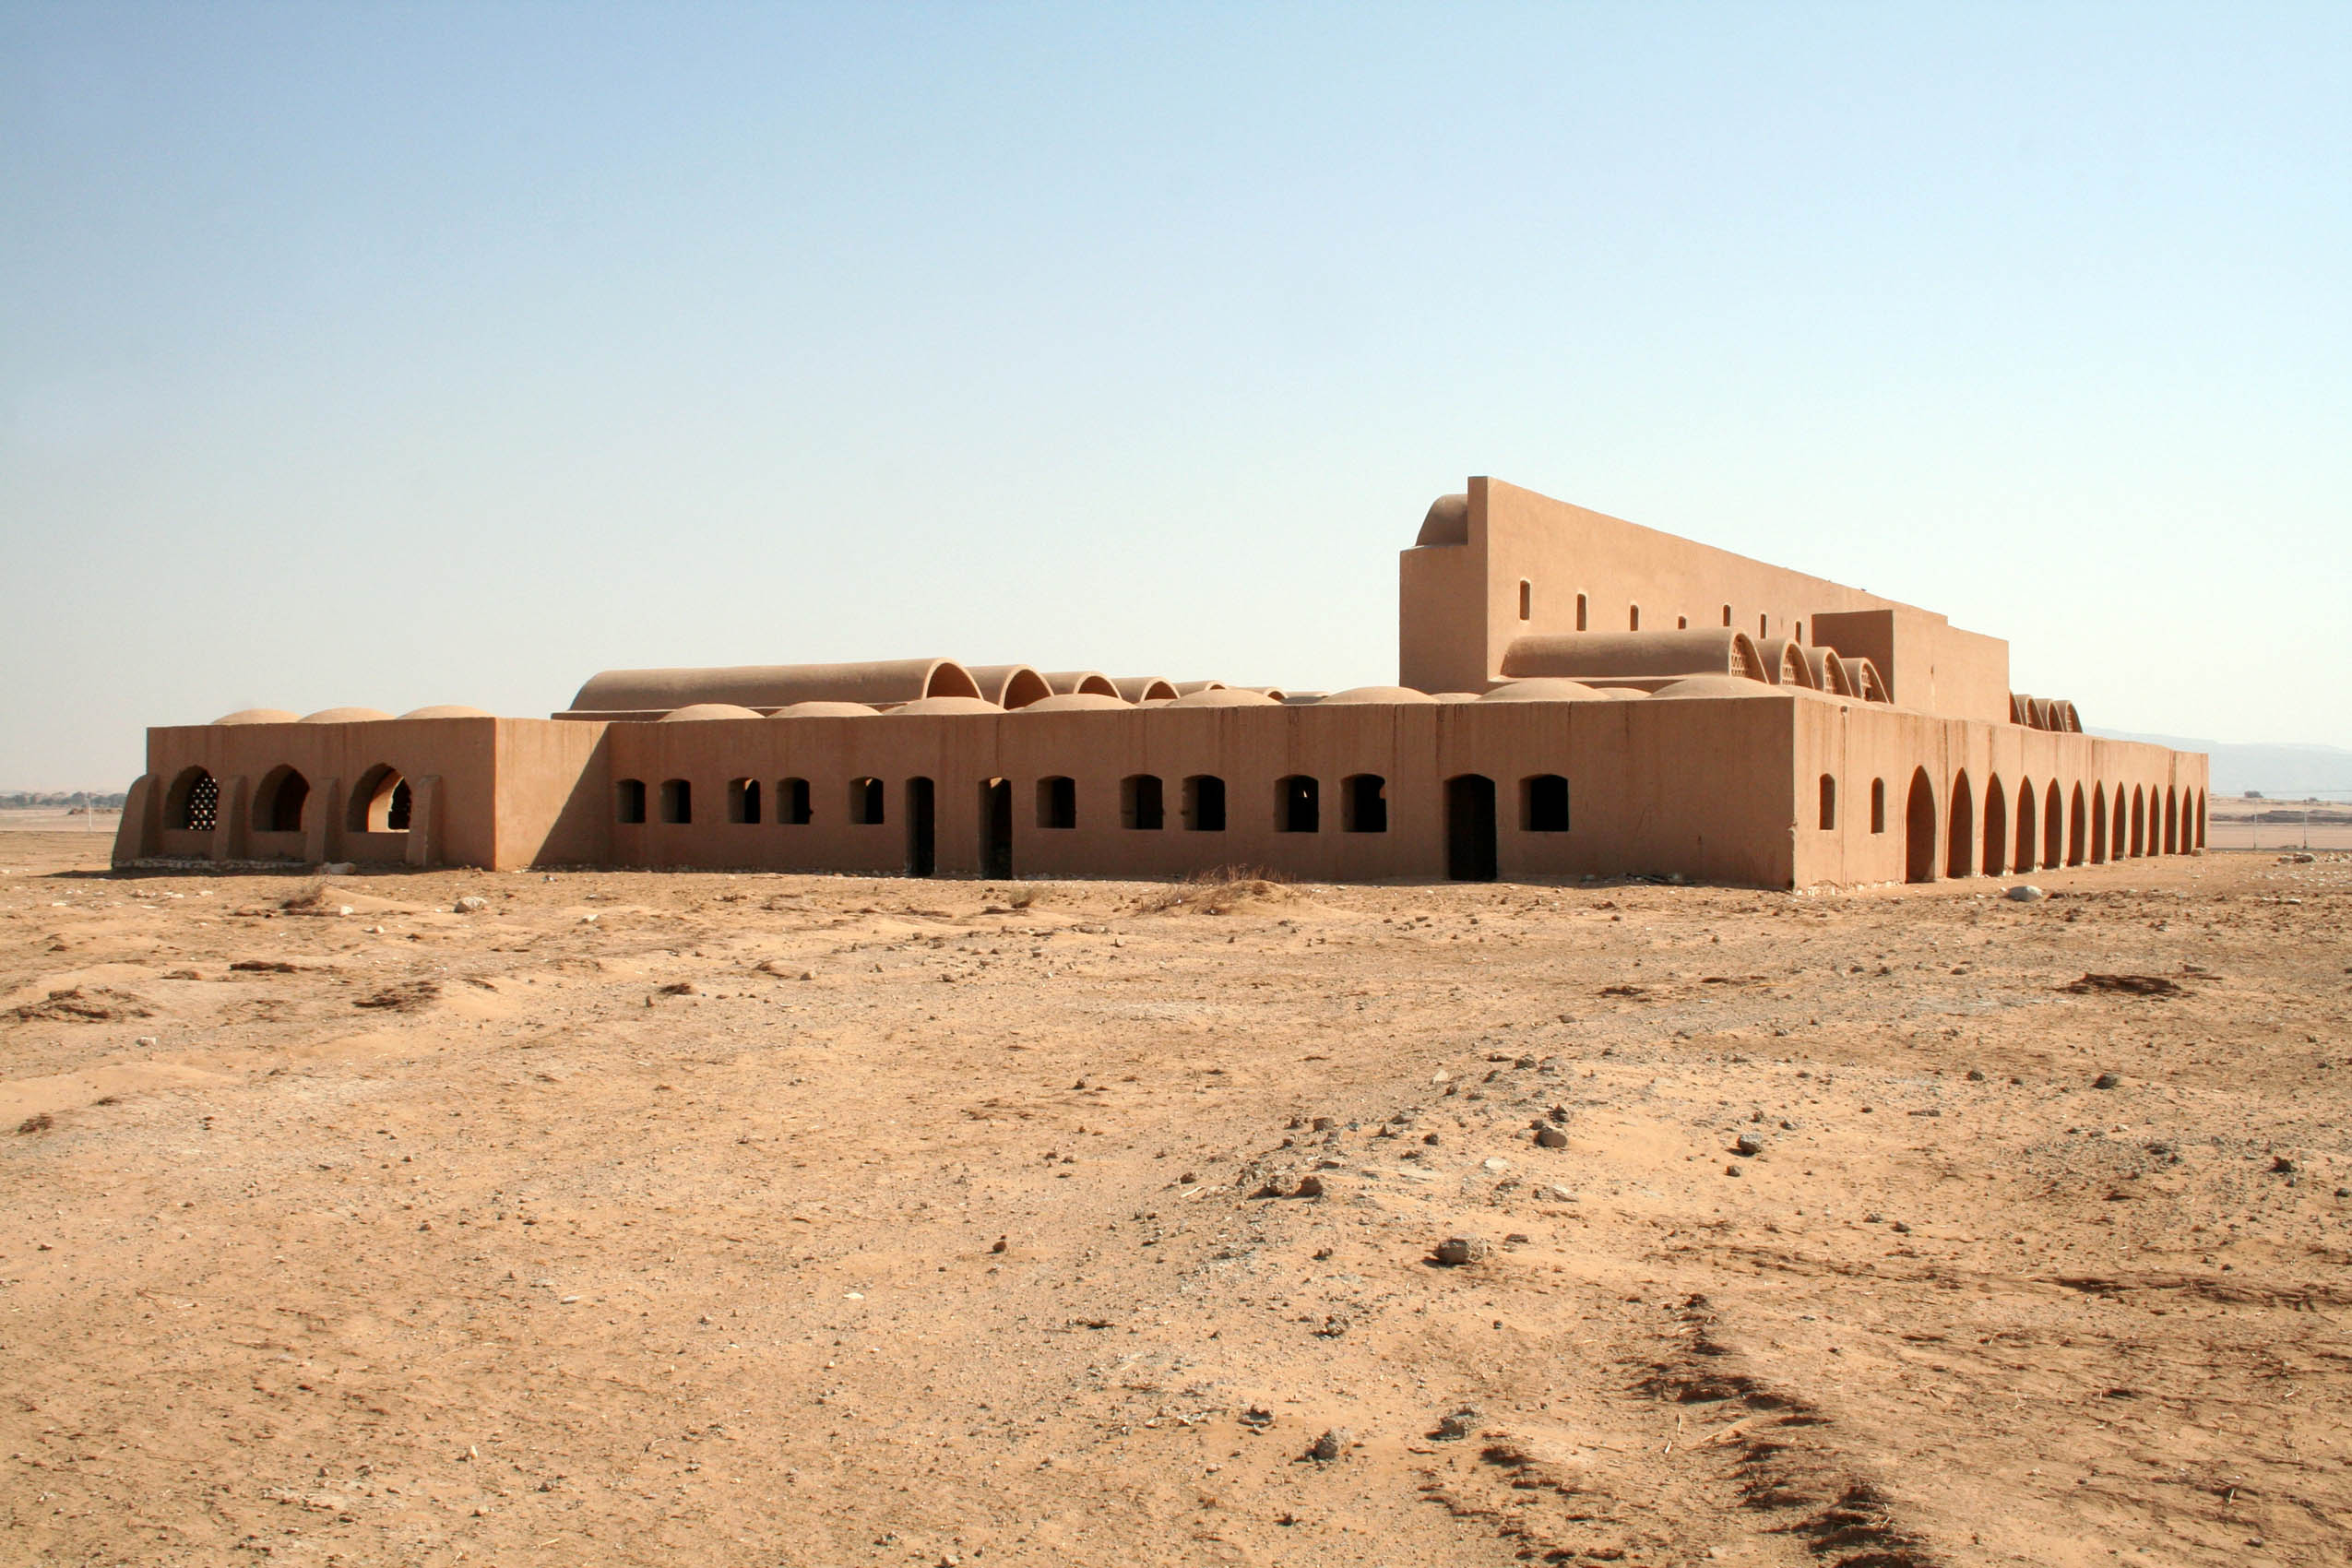 Hassan Fathy And The Architecture For The Poor The